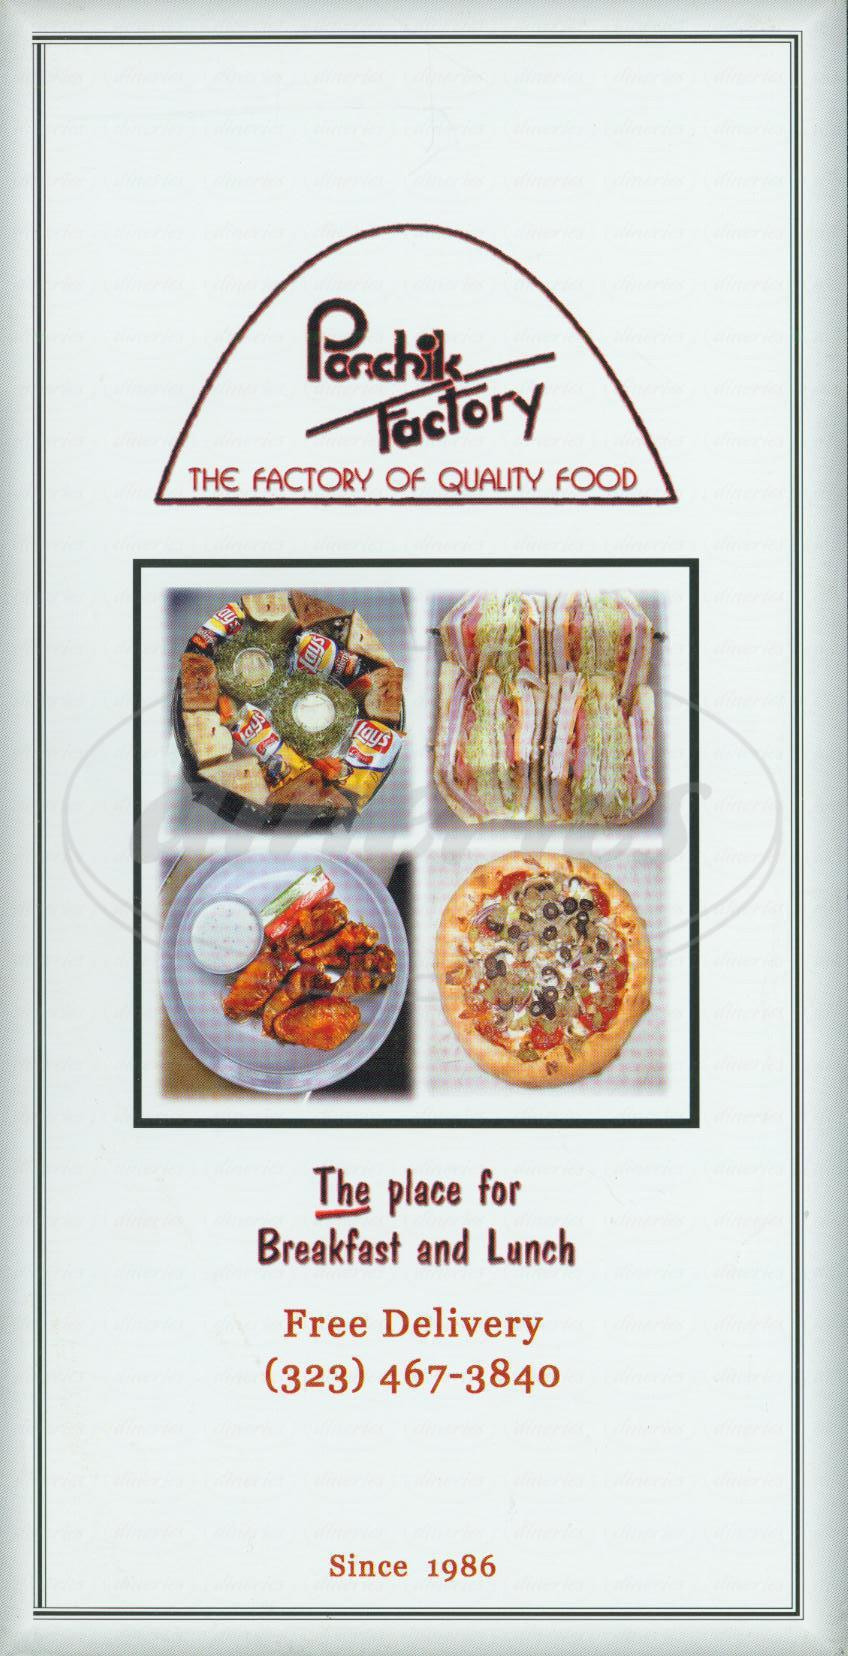 menu for Ponchik Factory